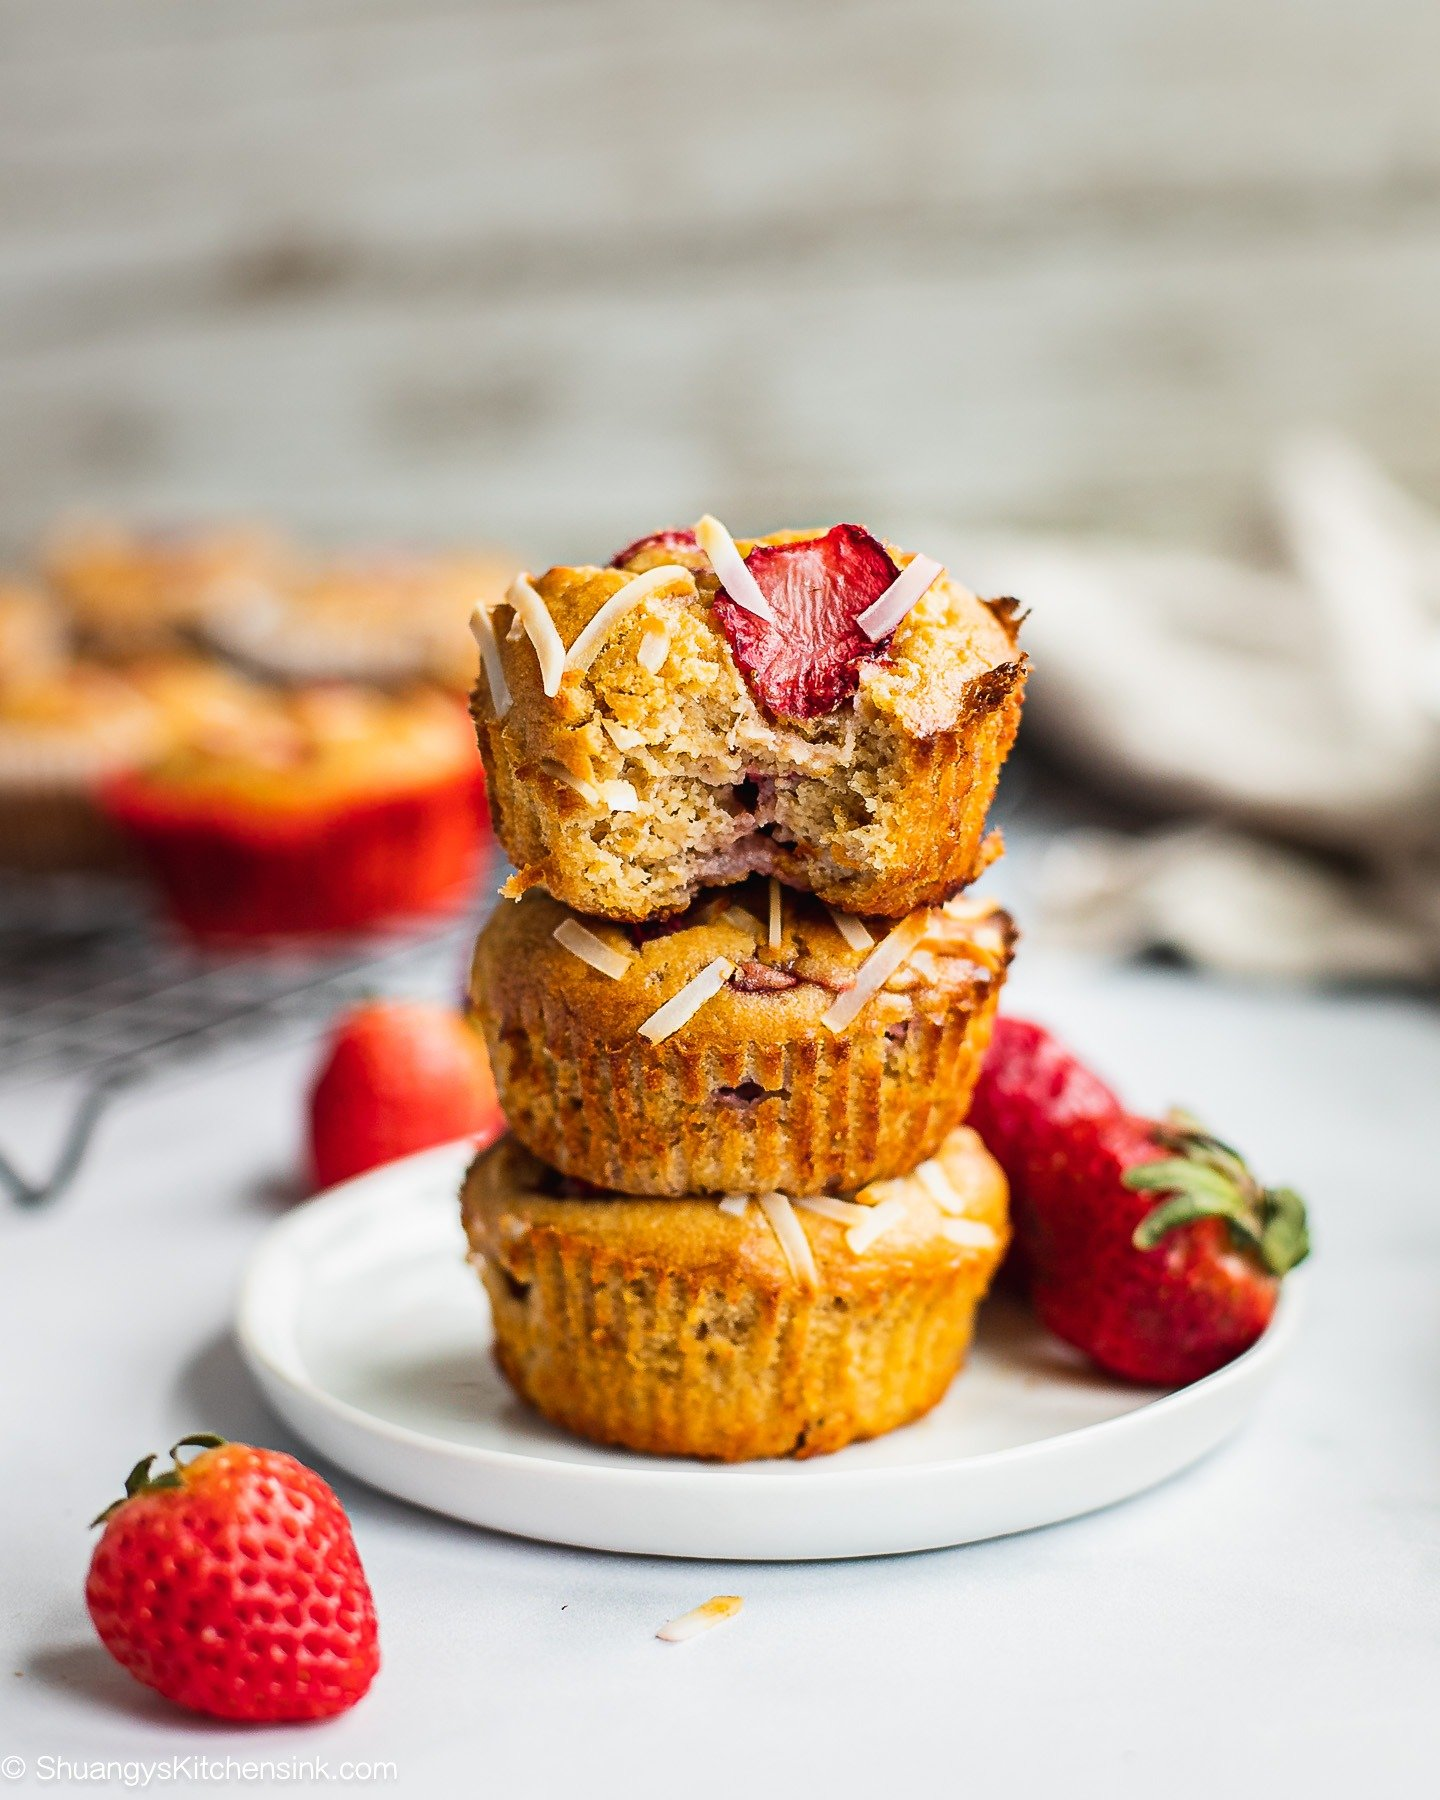 There is a stack of strawberry banana muffin on a plate, topped with nut butter, fresh strawberry. There is a bite.